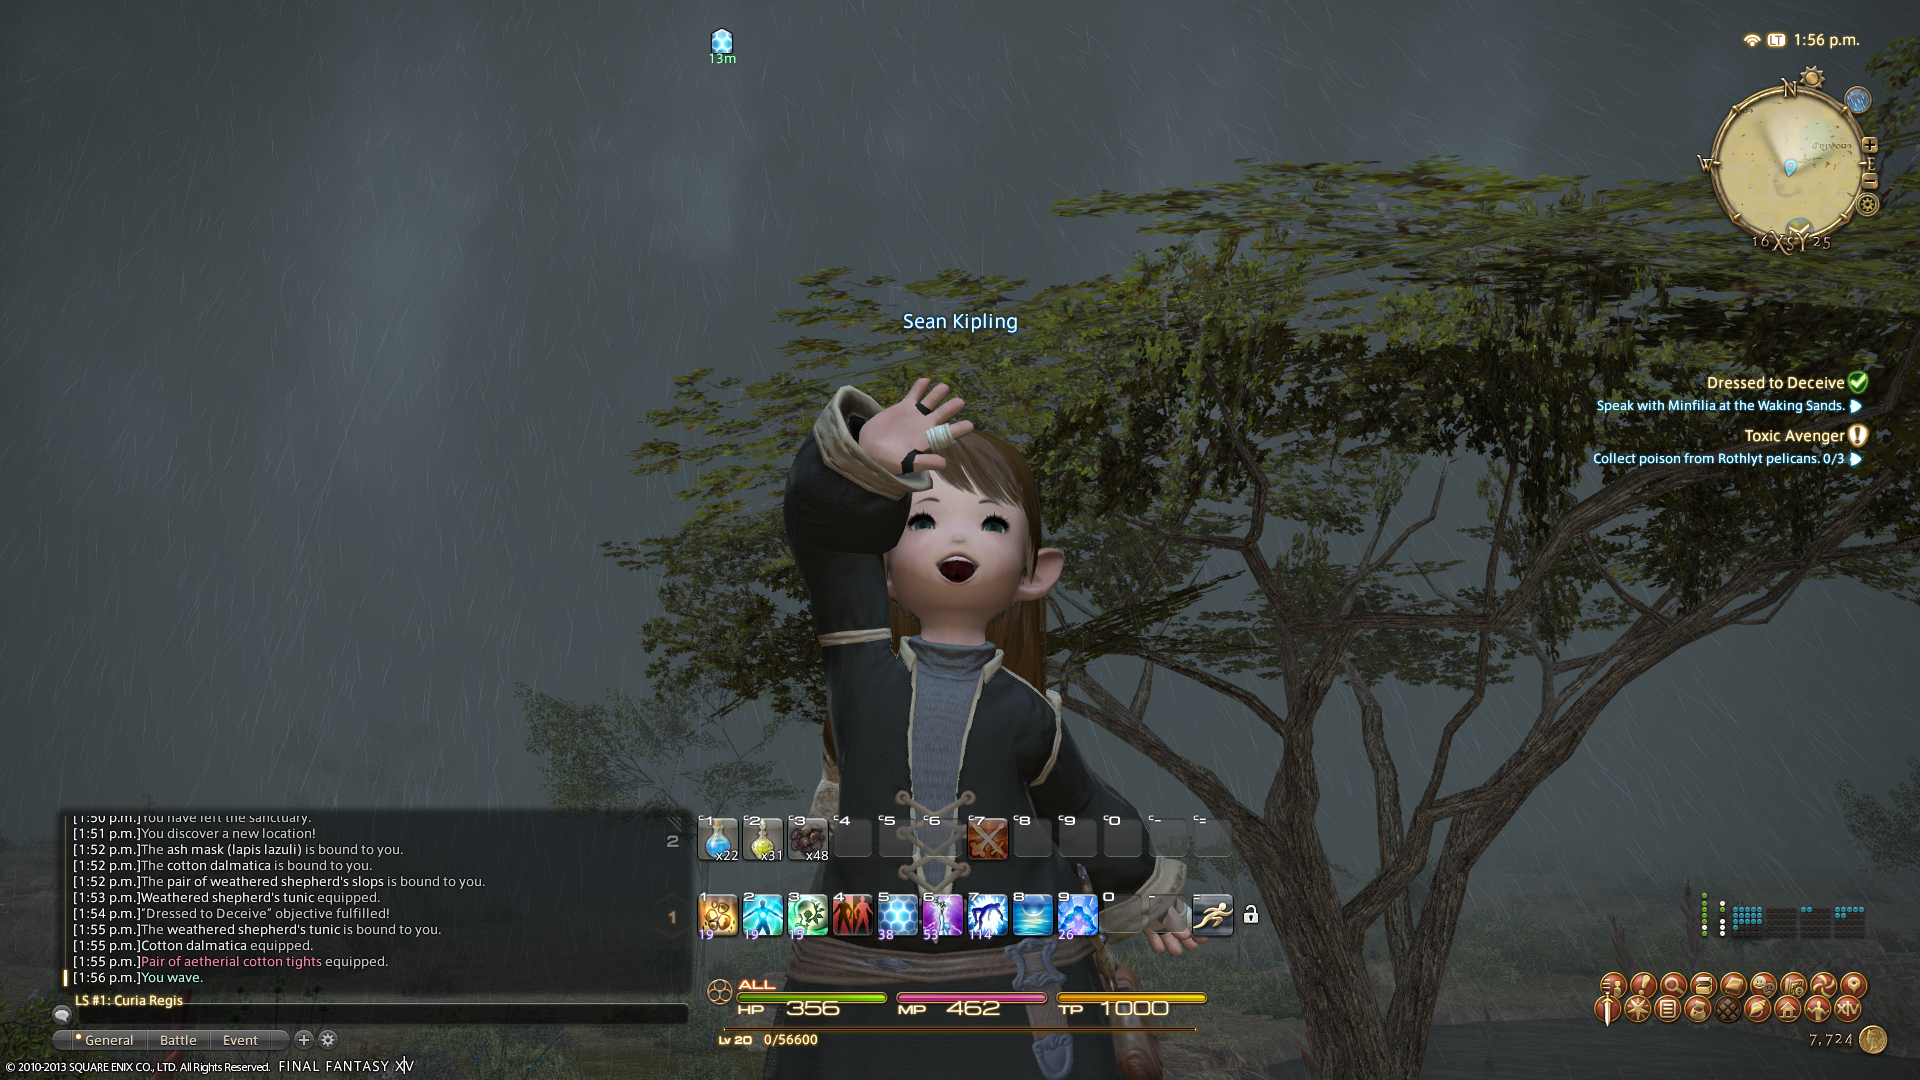 kipling ffxiv yeah thread picture cute lalafell